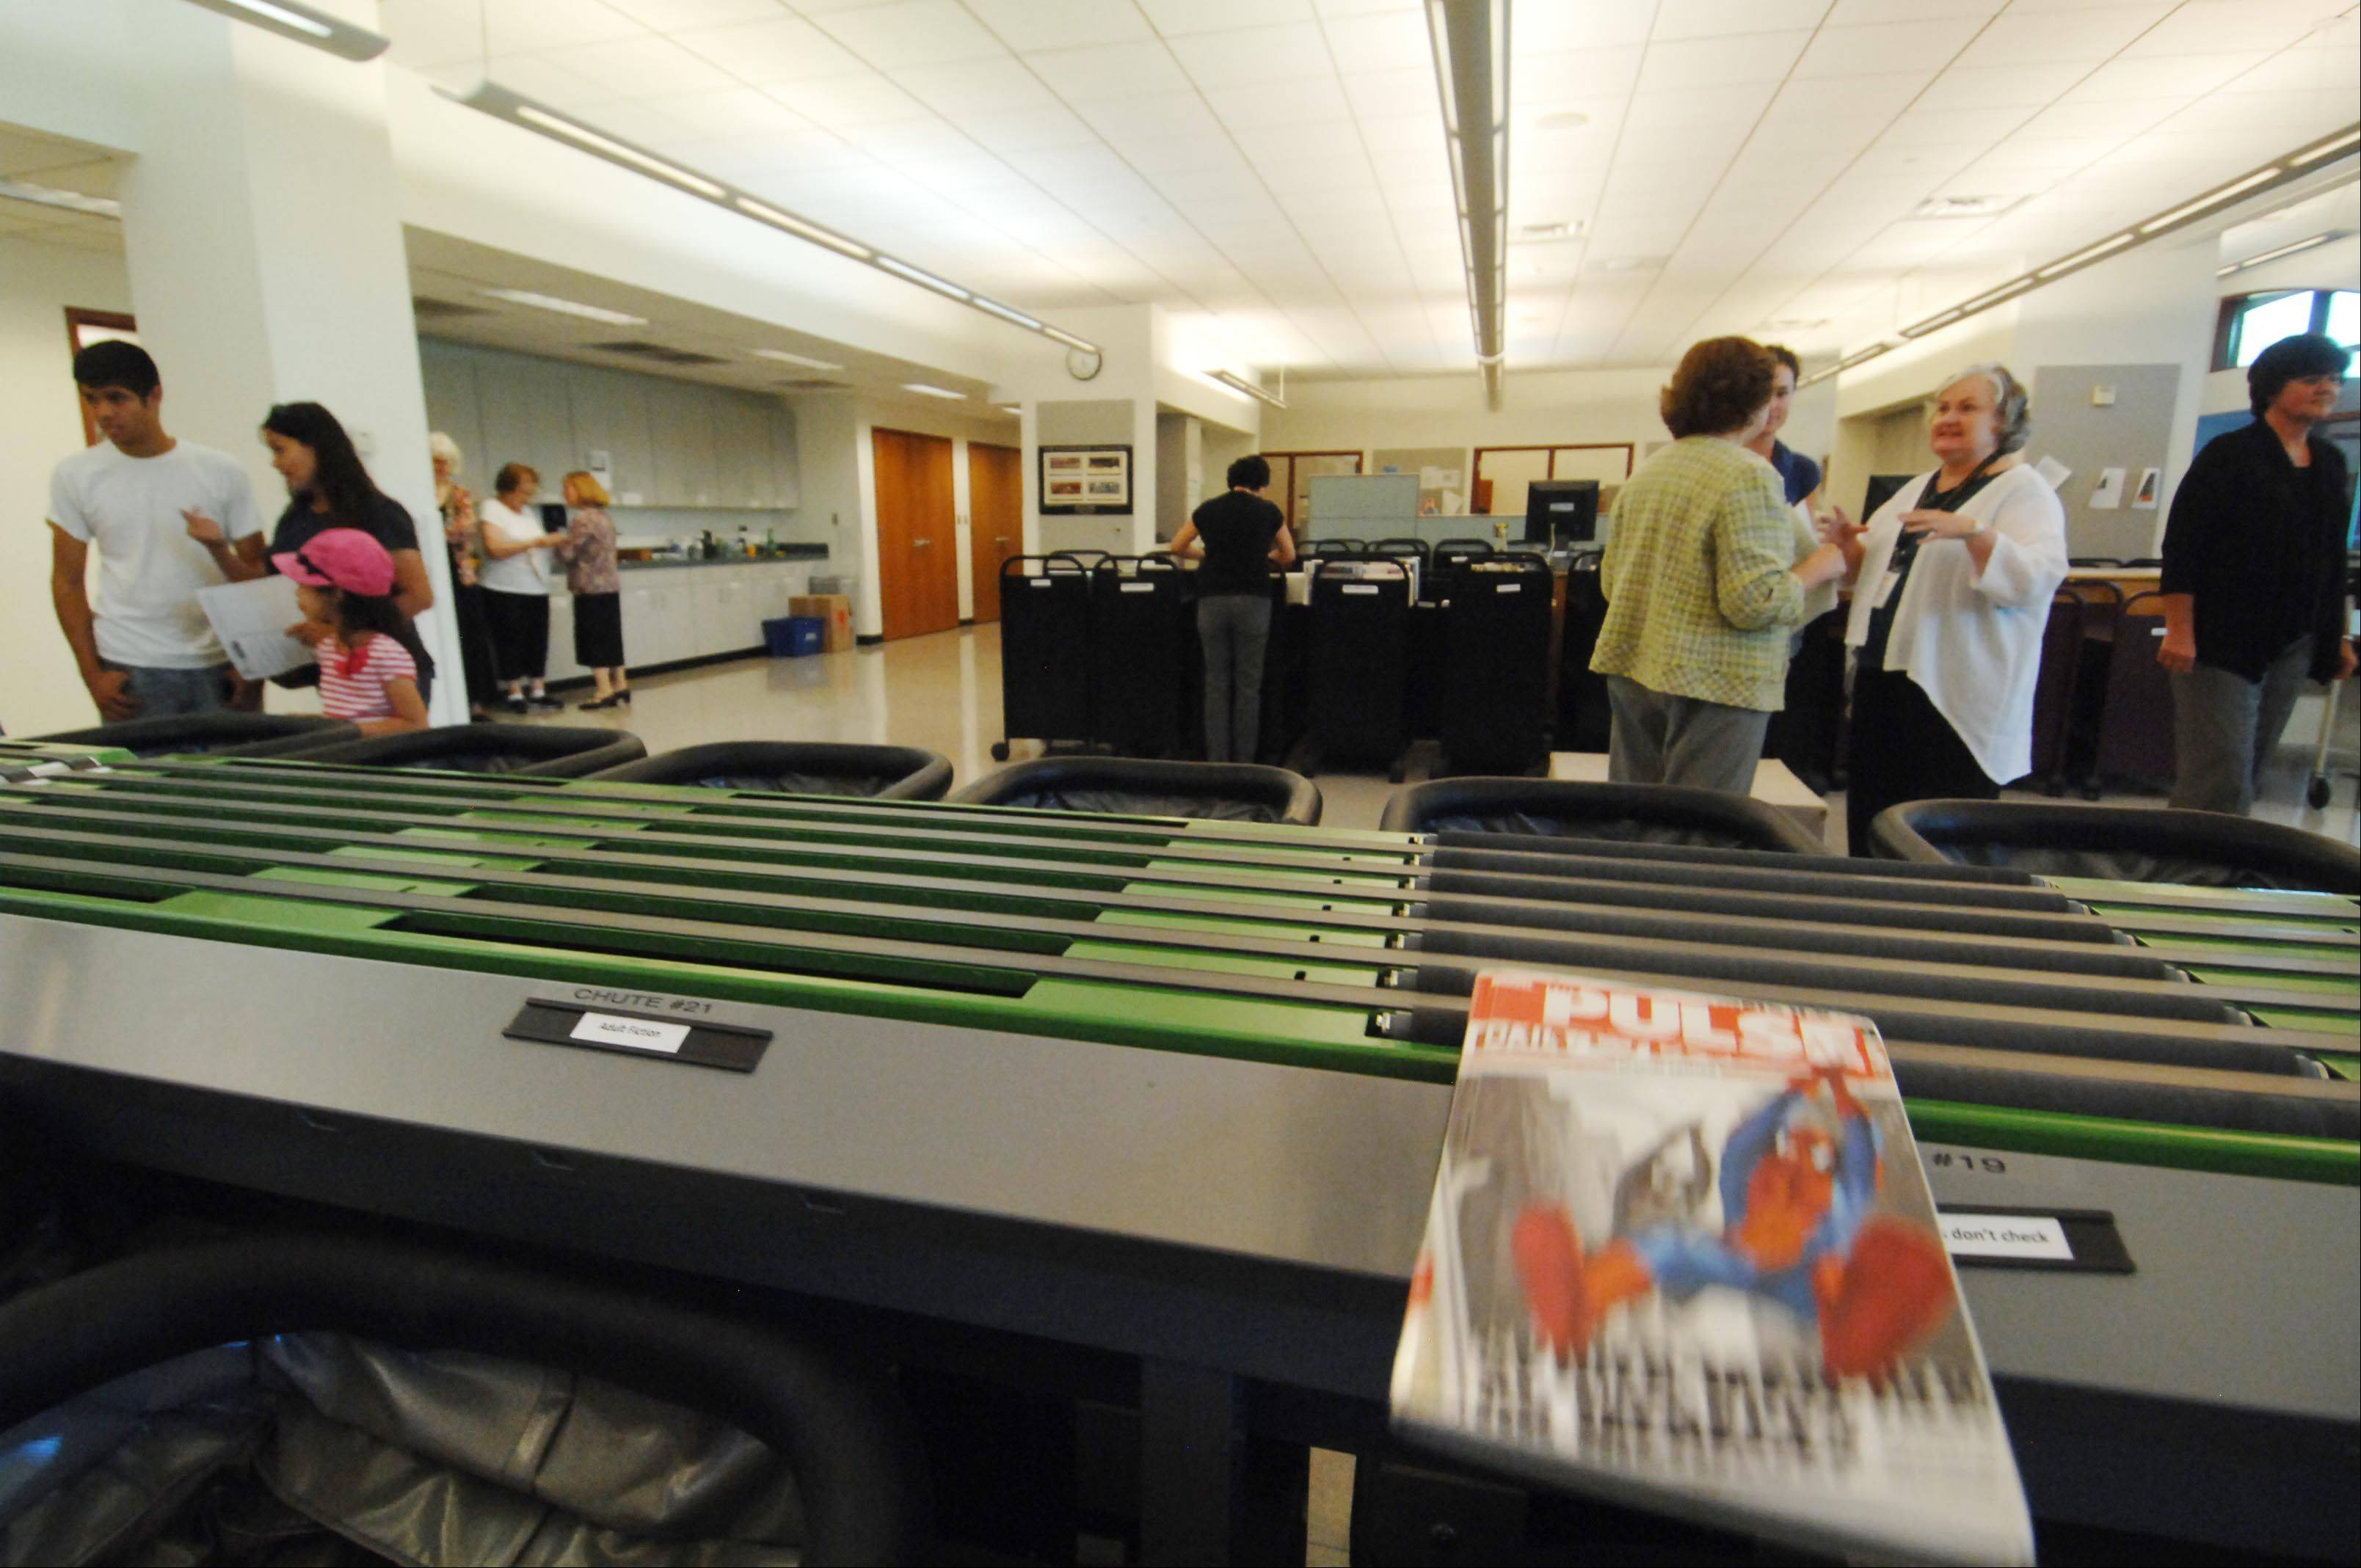 A book is automatically moved from the conveyor belt to a bin as a new sorting system works at the Gail Borden Public Library during a public demonstration Tuesday evening in Elgin. Library material can now be sorted and reshelved in minutes instead of days.